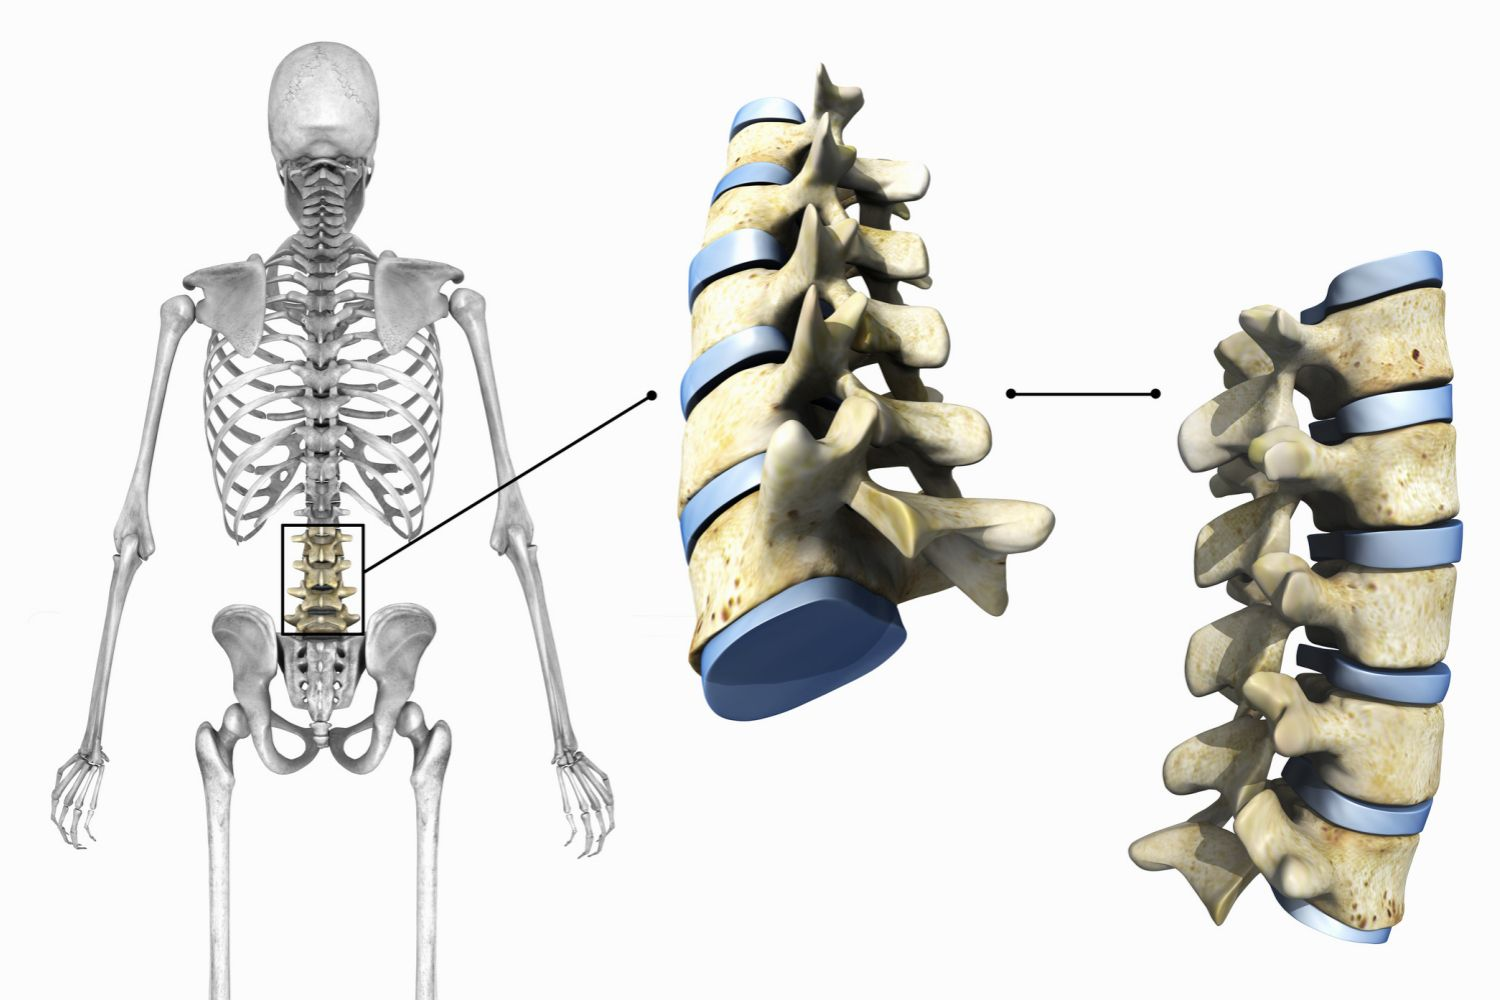 Diagram showing lumbar vertebrae and joints on a white background.